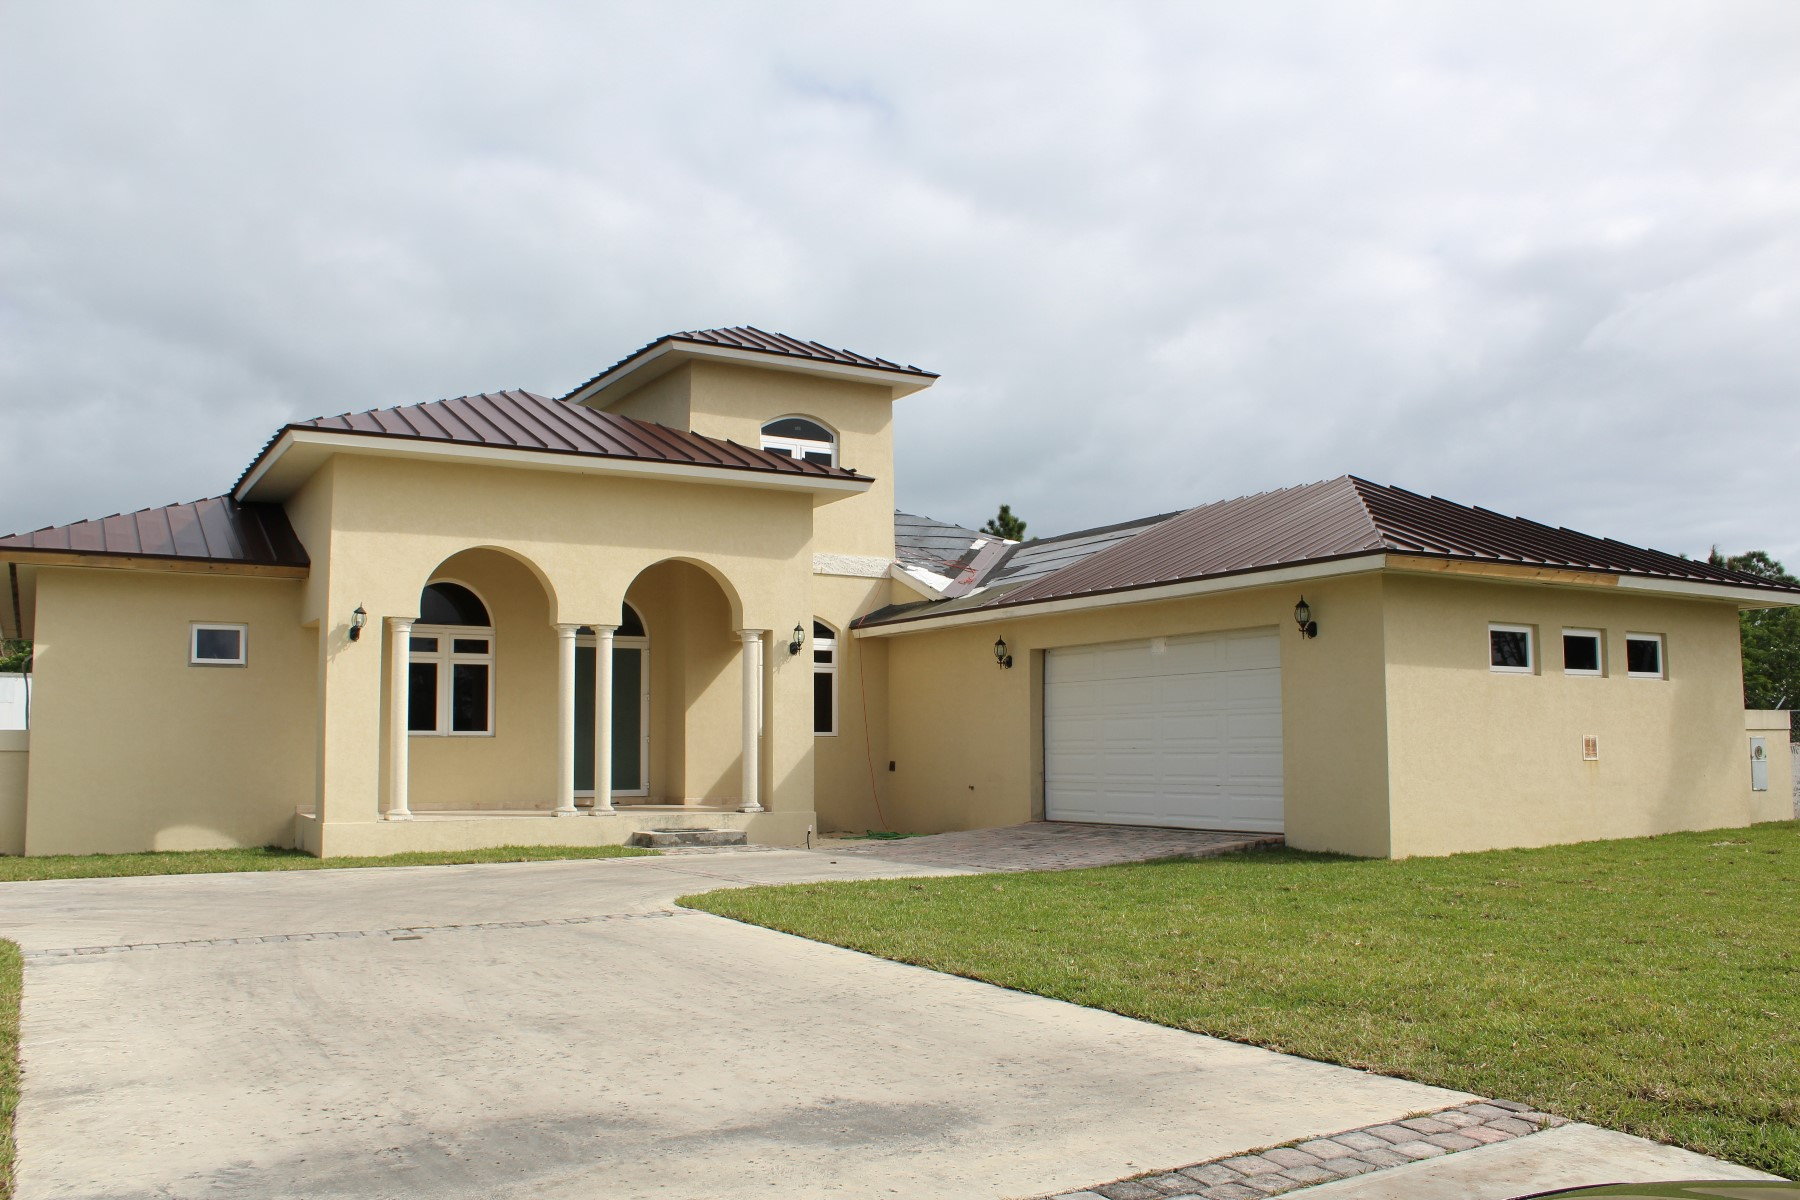 Single Family Home for Rent at Executive or Family Rental In Greening Glade Greening Glade, Grand Bahama, Bahamas